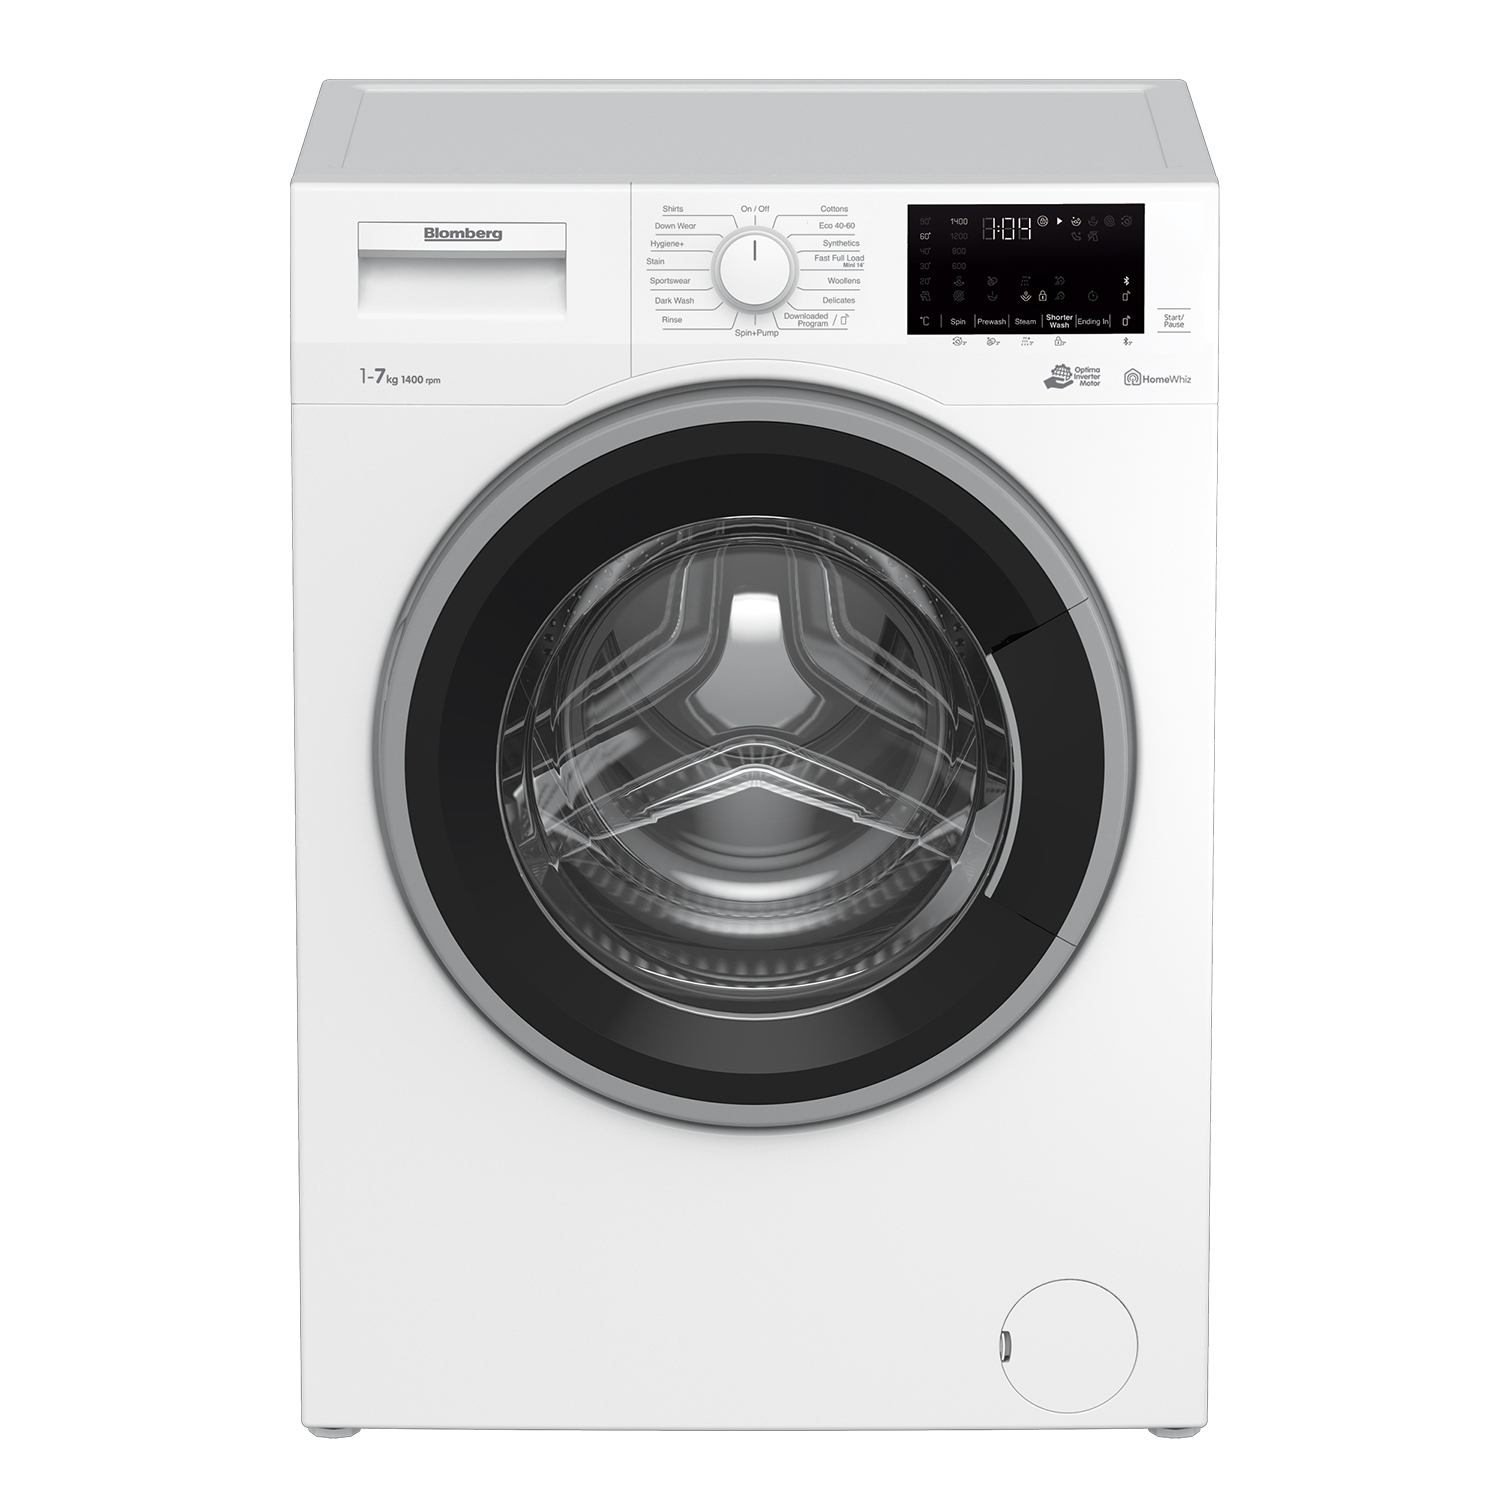 Blomberg LWF174310W 7kg 1400 Spin Washing Machine with Bluetooth Connection - White - 0